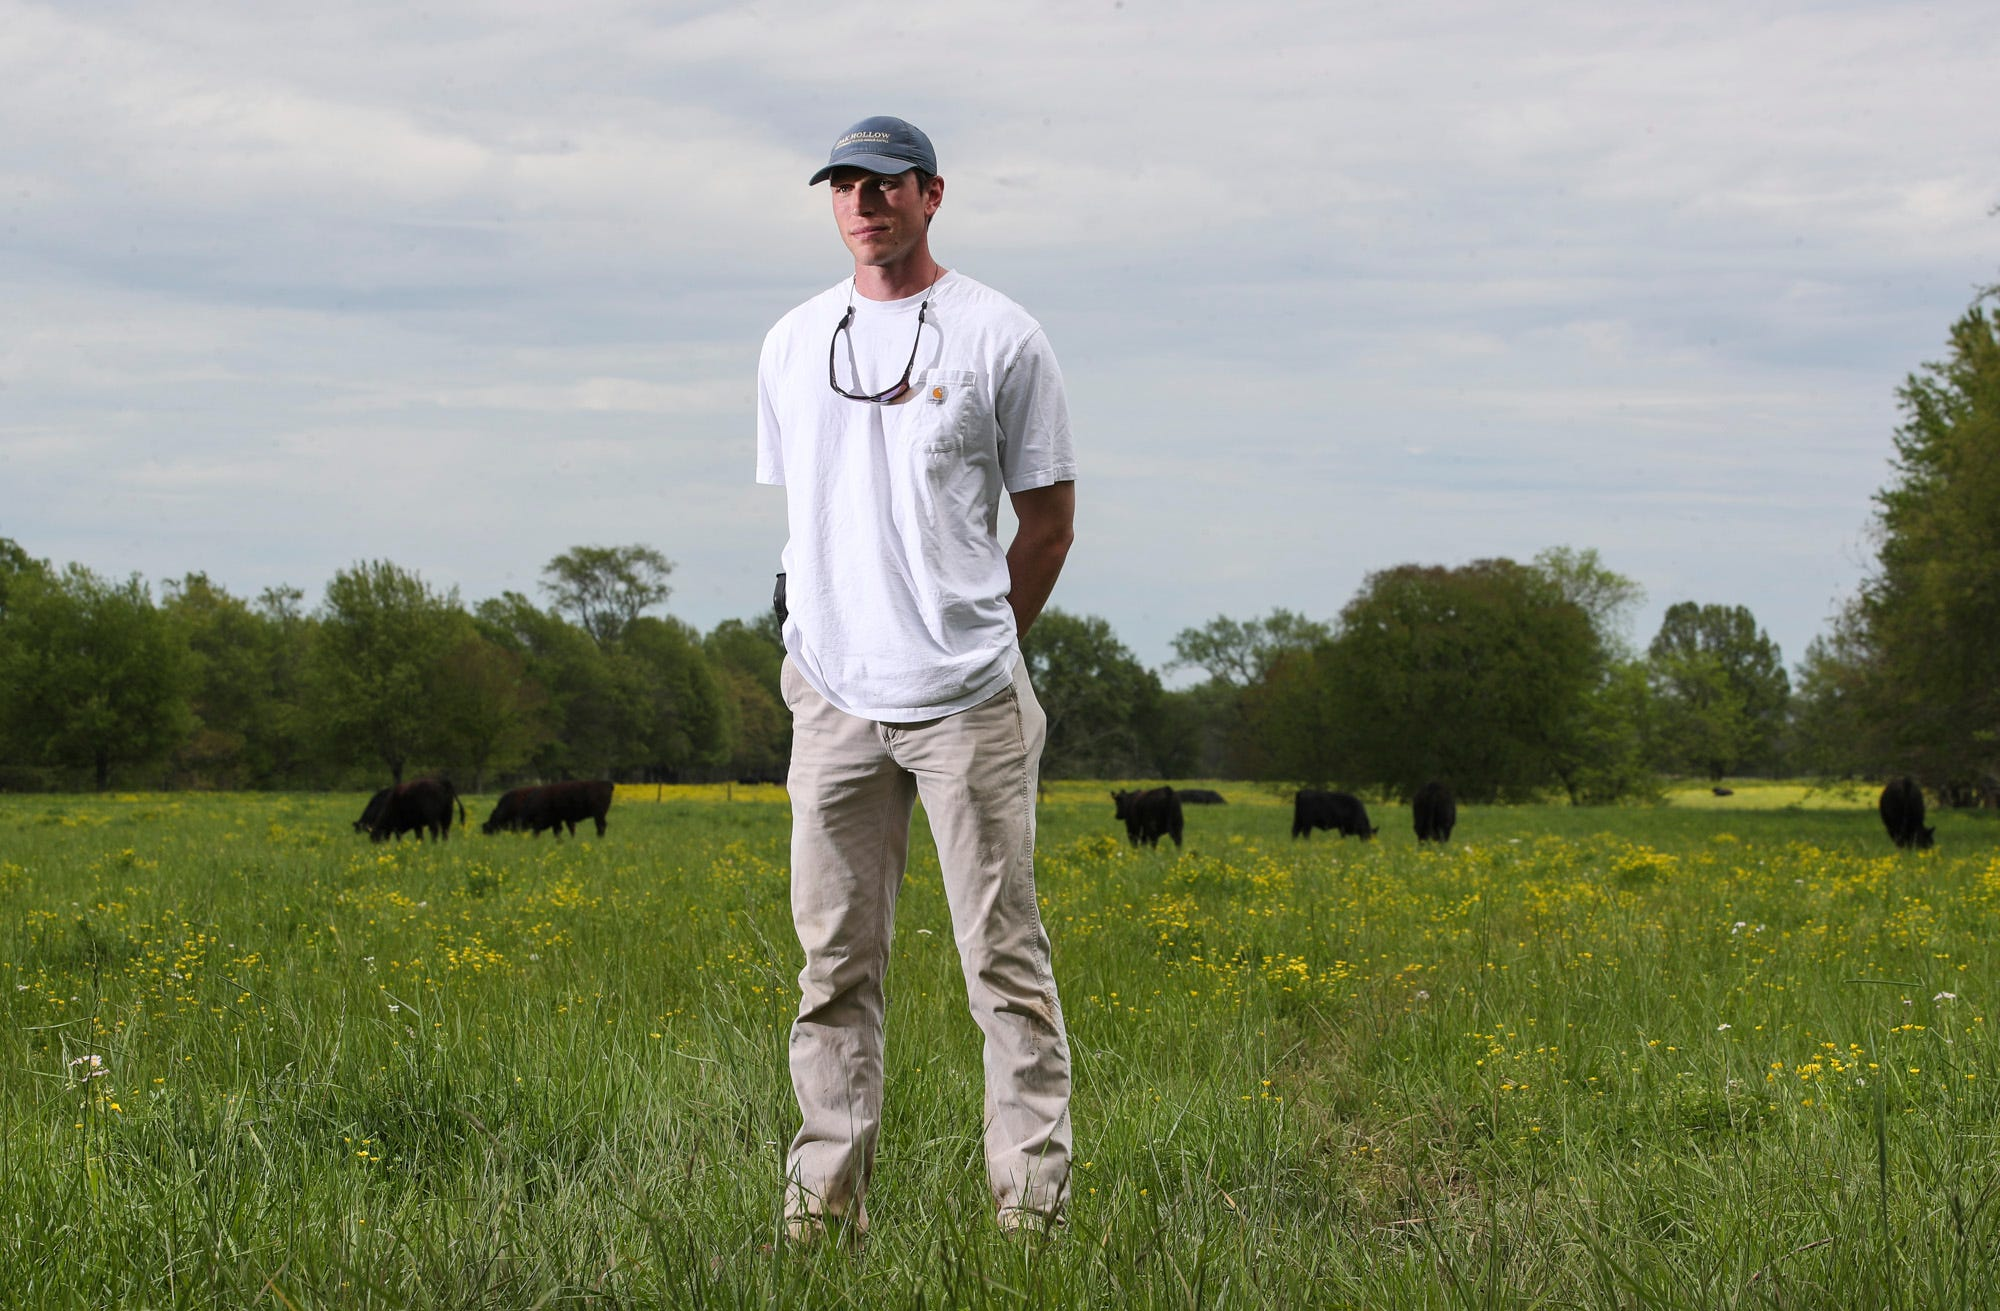 oe Lowe, 29, is a cattle rancher for his family's Oak Hollow Angus in Smiths Grove, Ky.